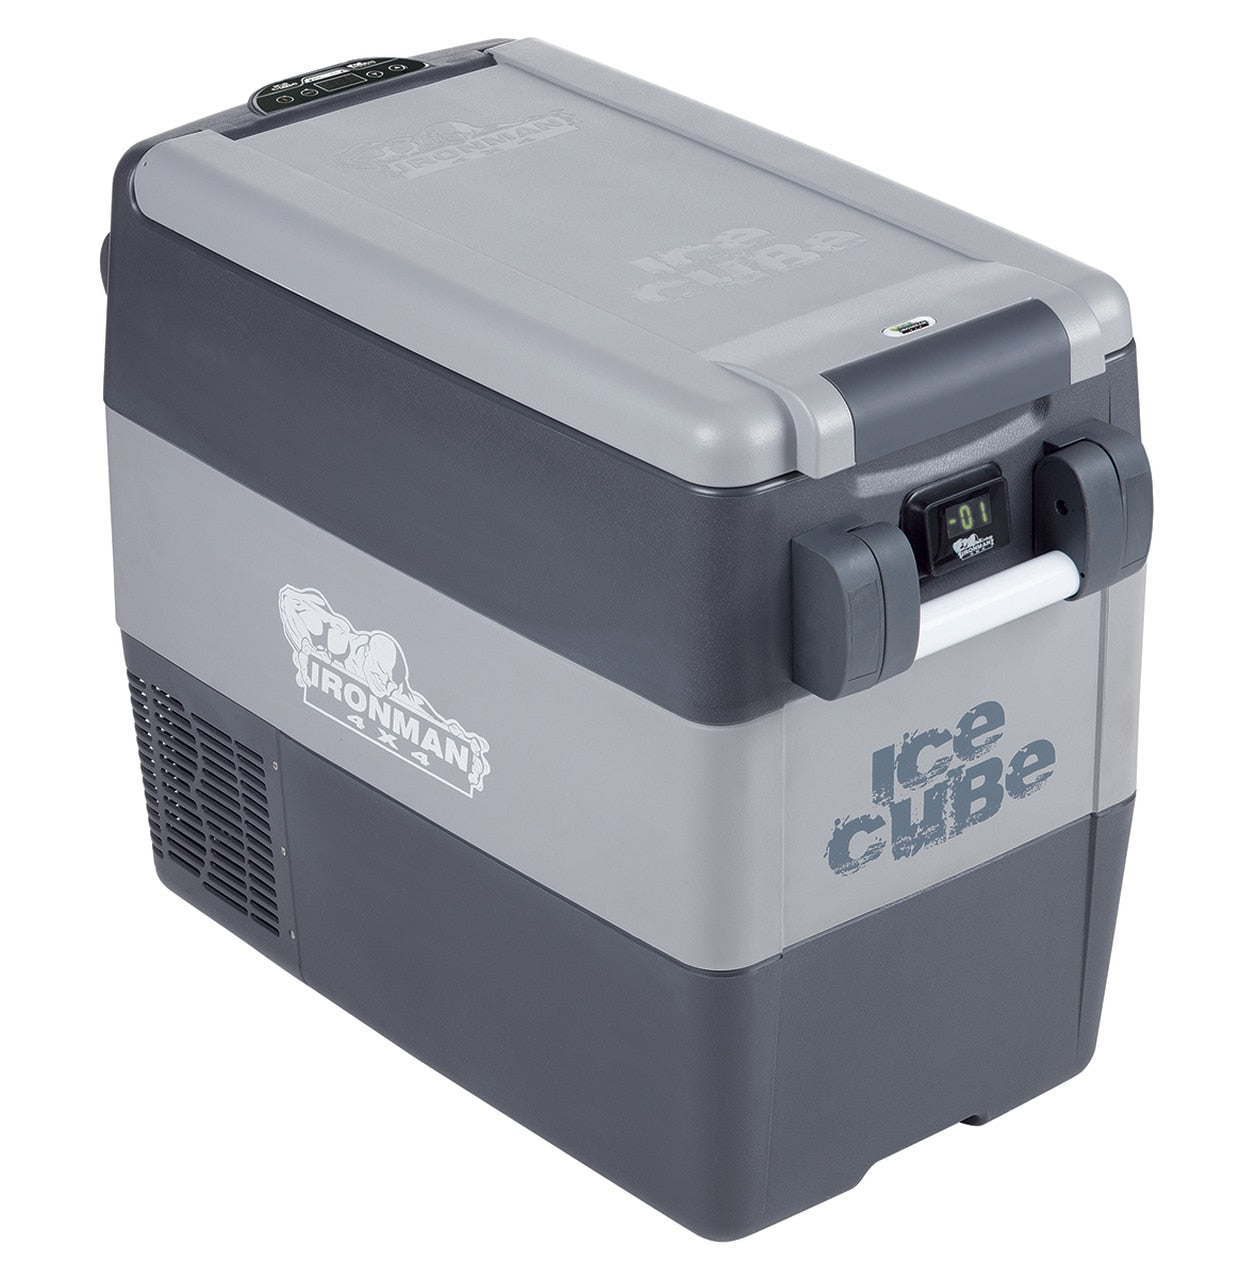 ICE CUBE FRIDGE/FREEZER 50L (52 QUARTS)